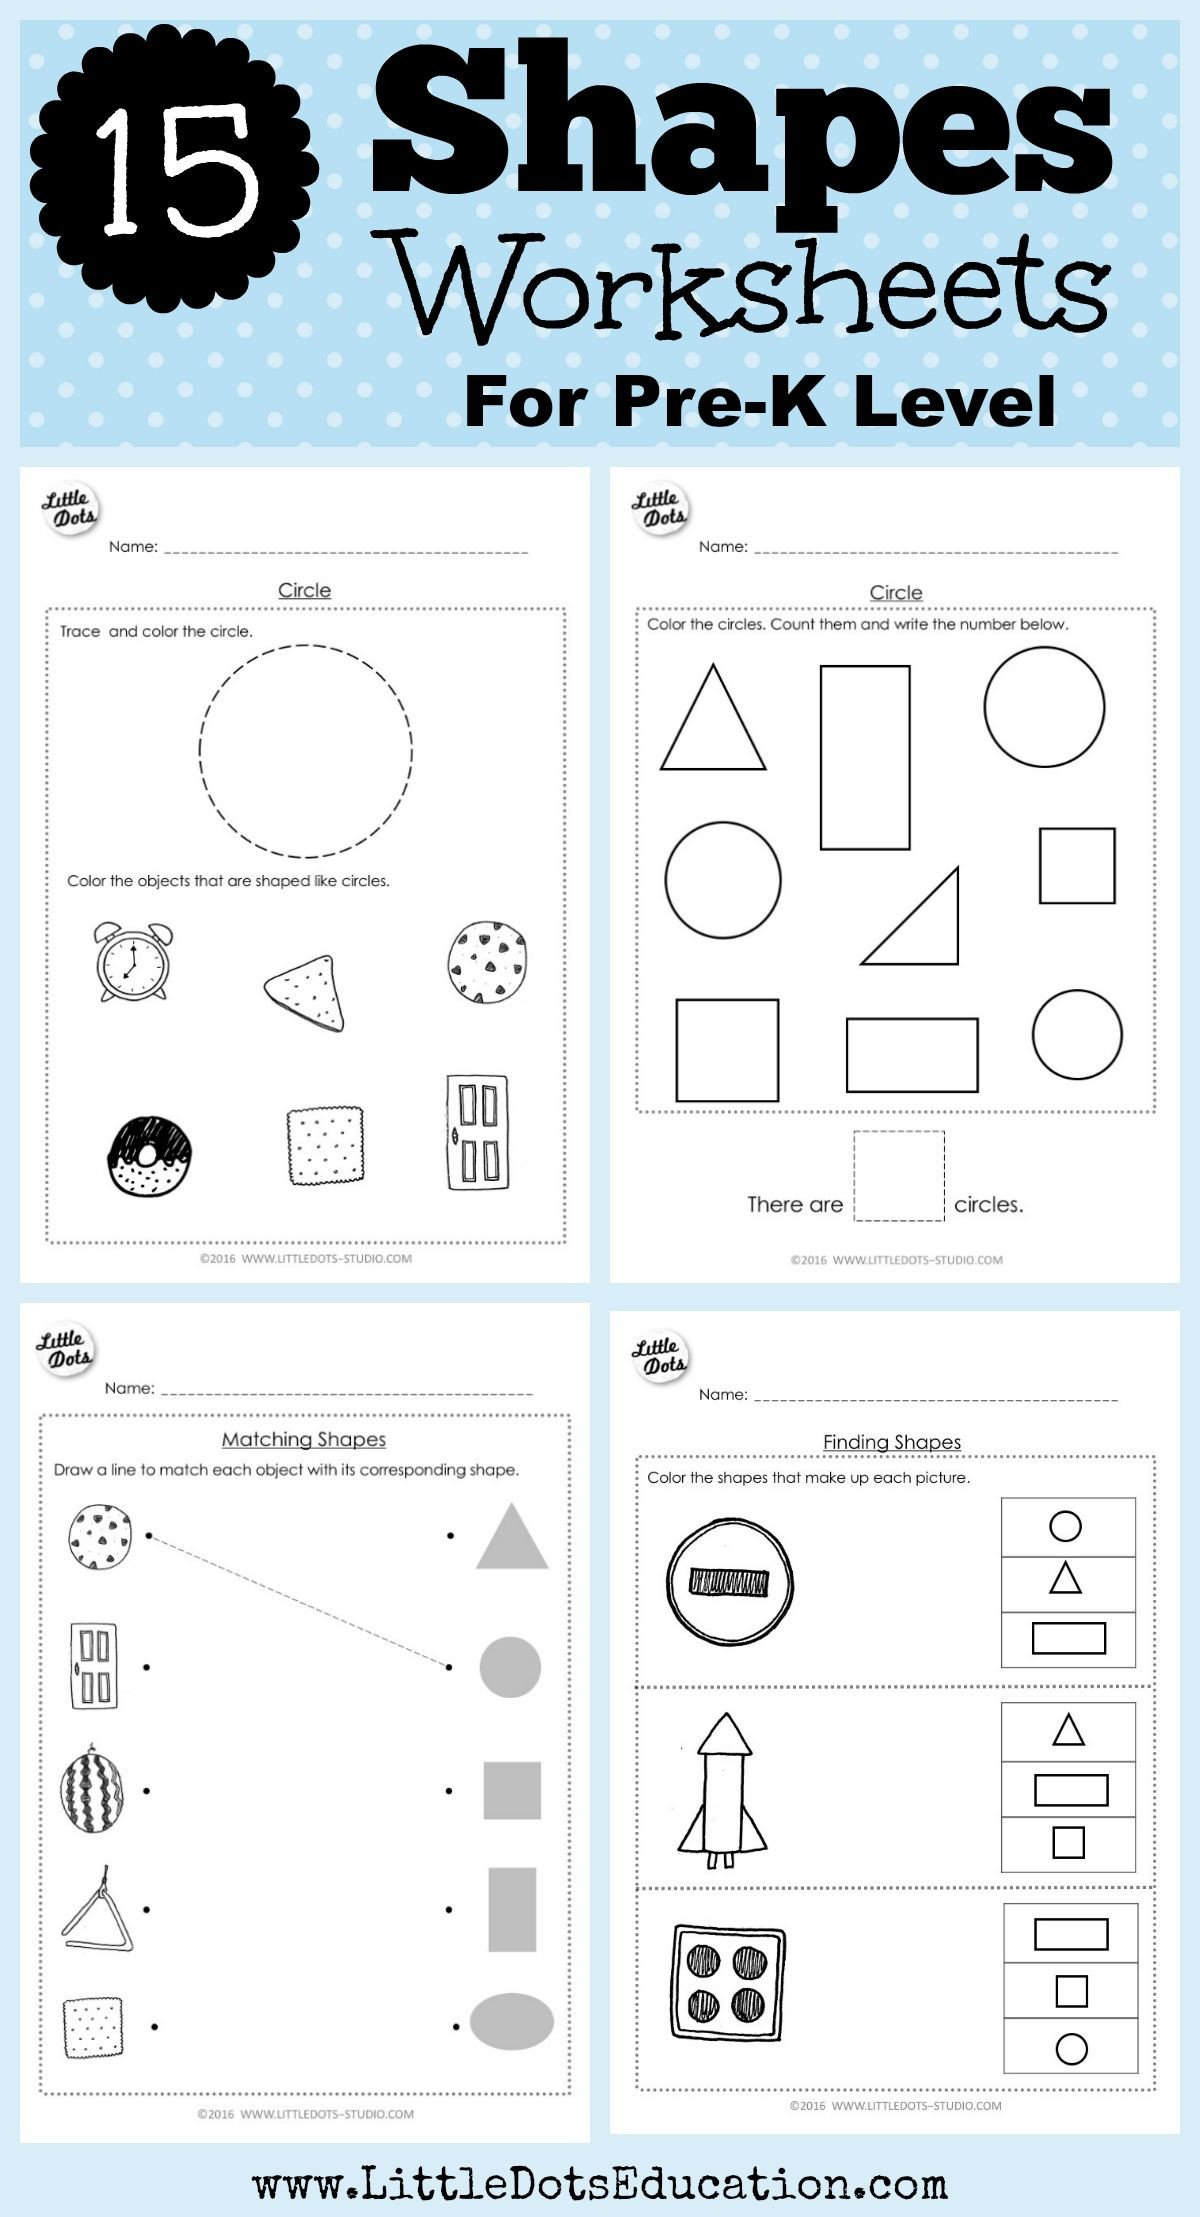 Identifying Shapes Worksheets Pre K Math Shapes Worksheets and Activities